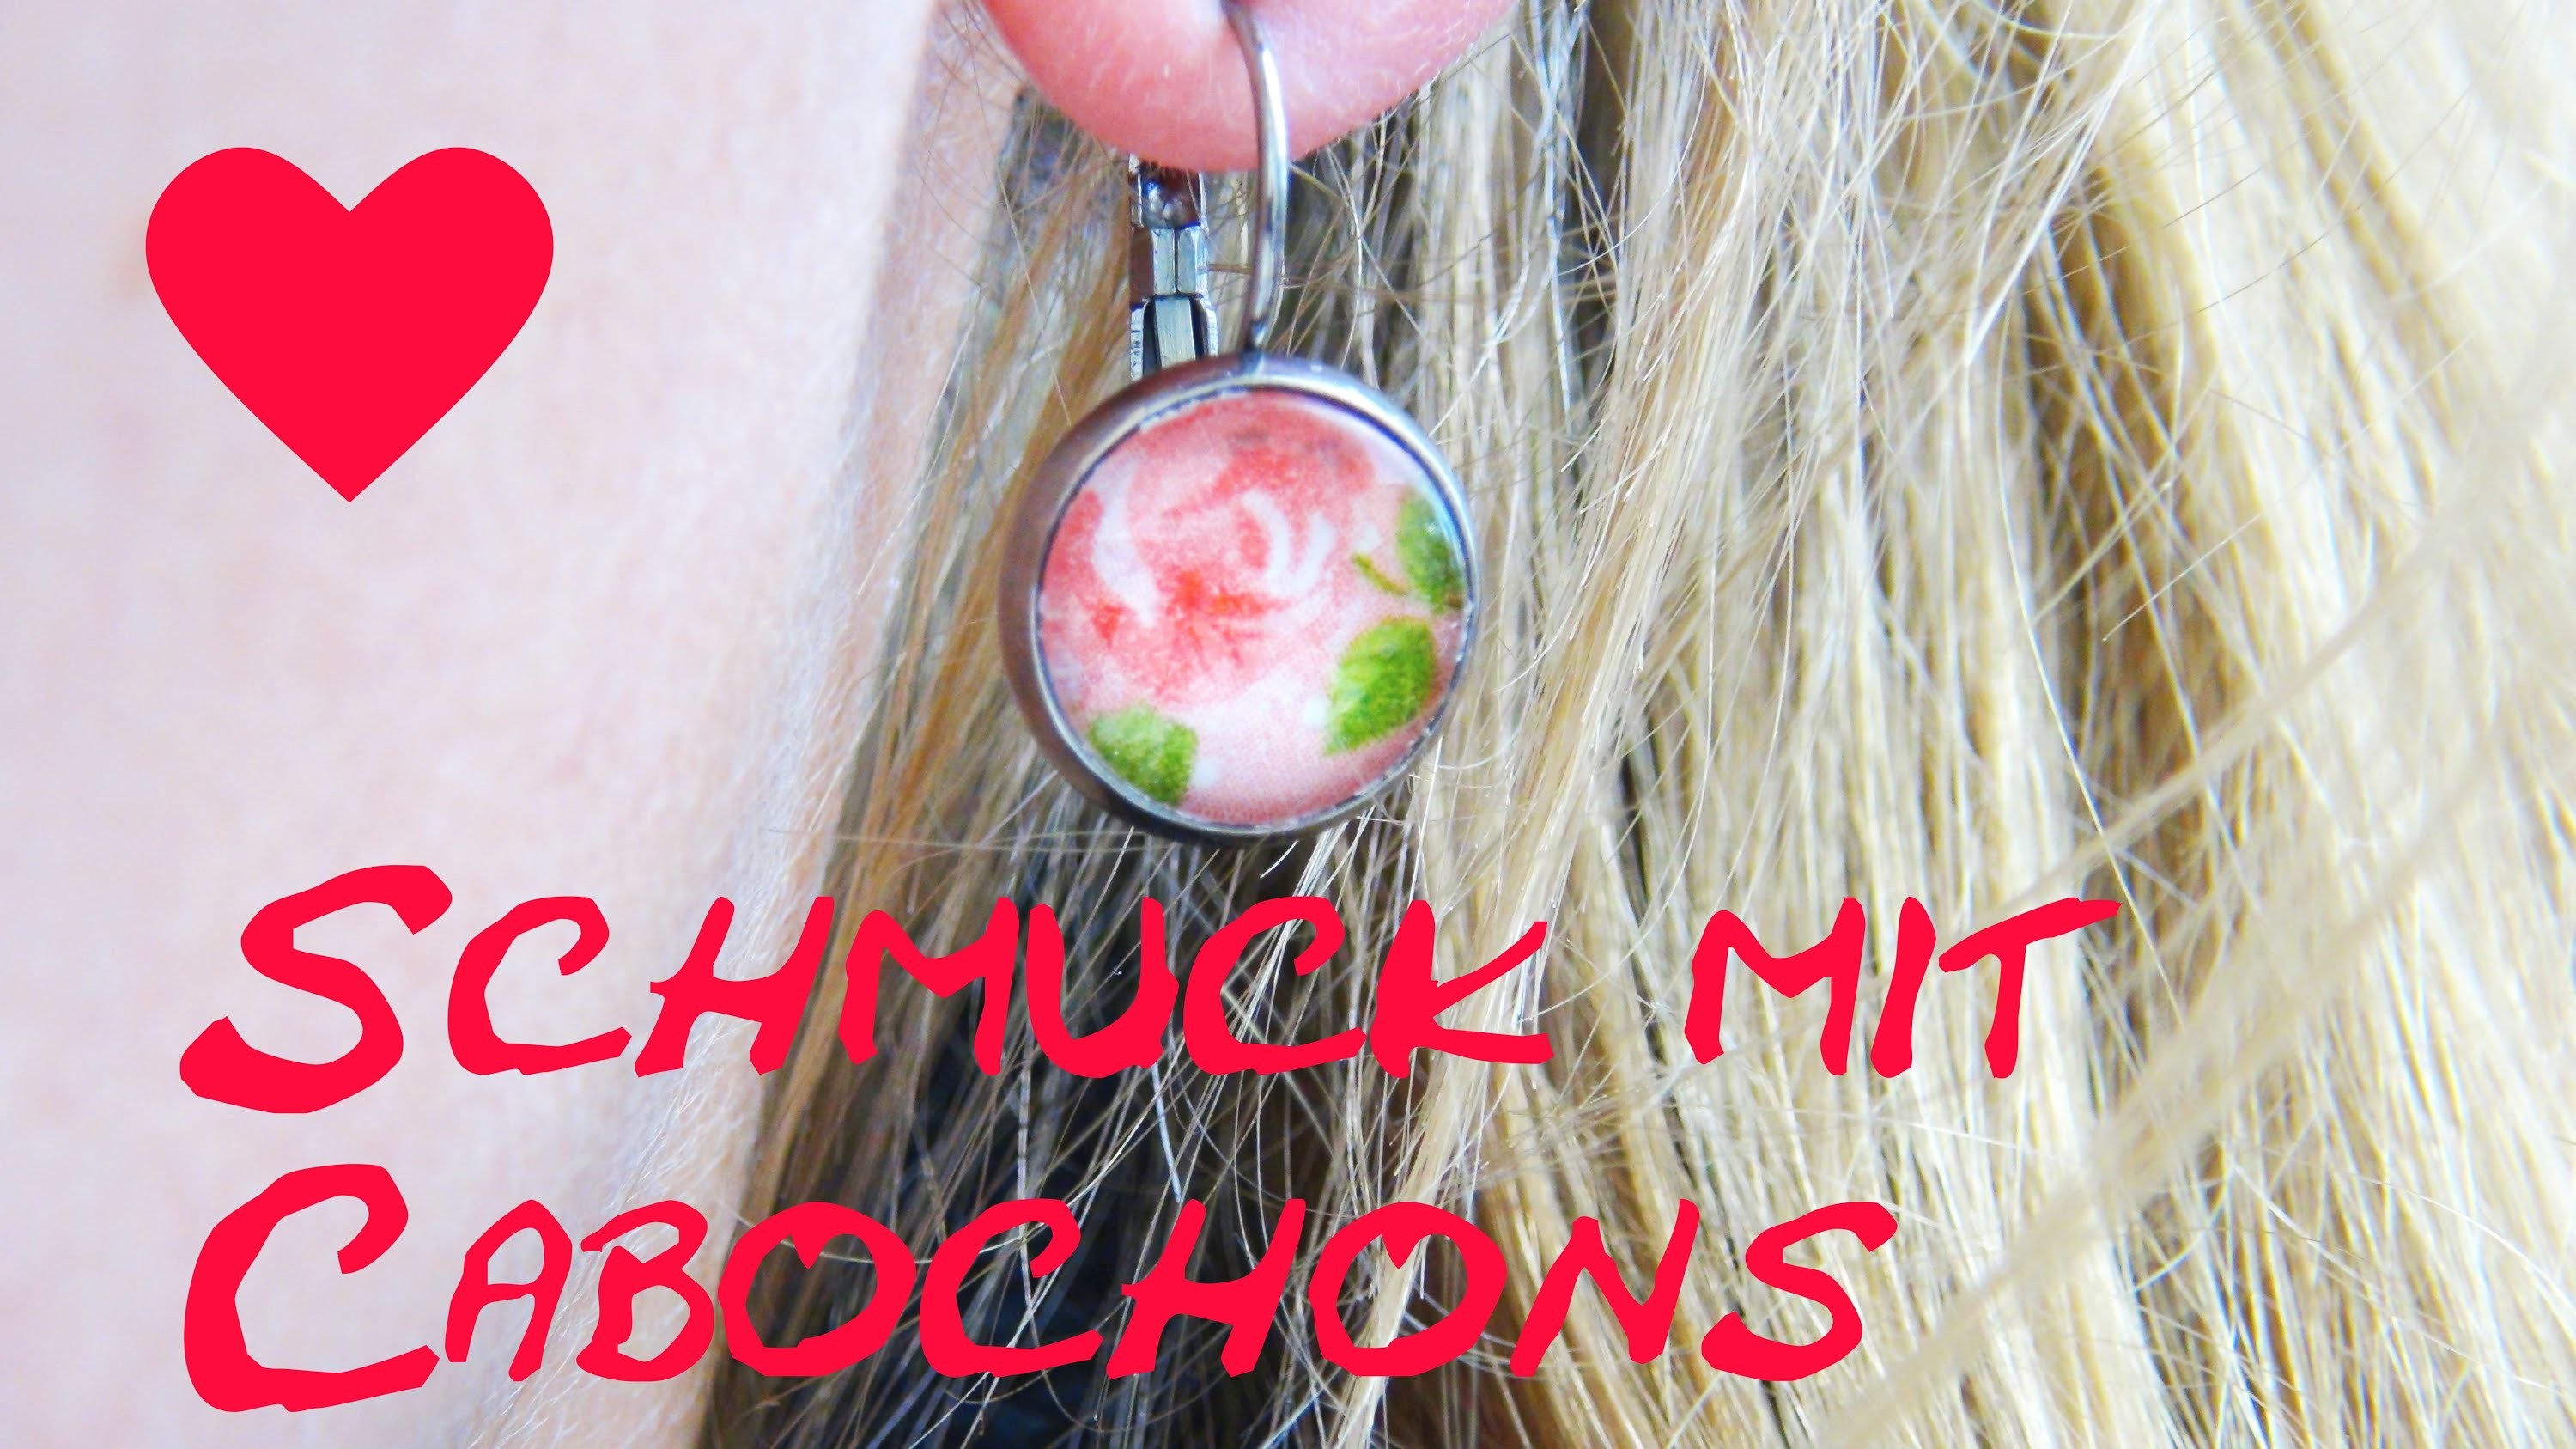 Ohrringe selber machen Anleitung Cabochon DIY Earring Schmuck Tuturoal How To make ear rings